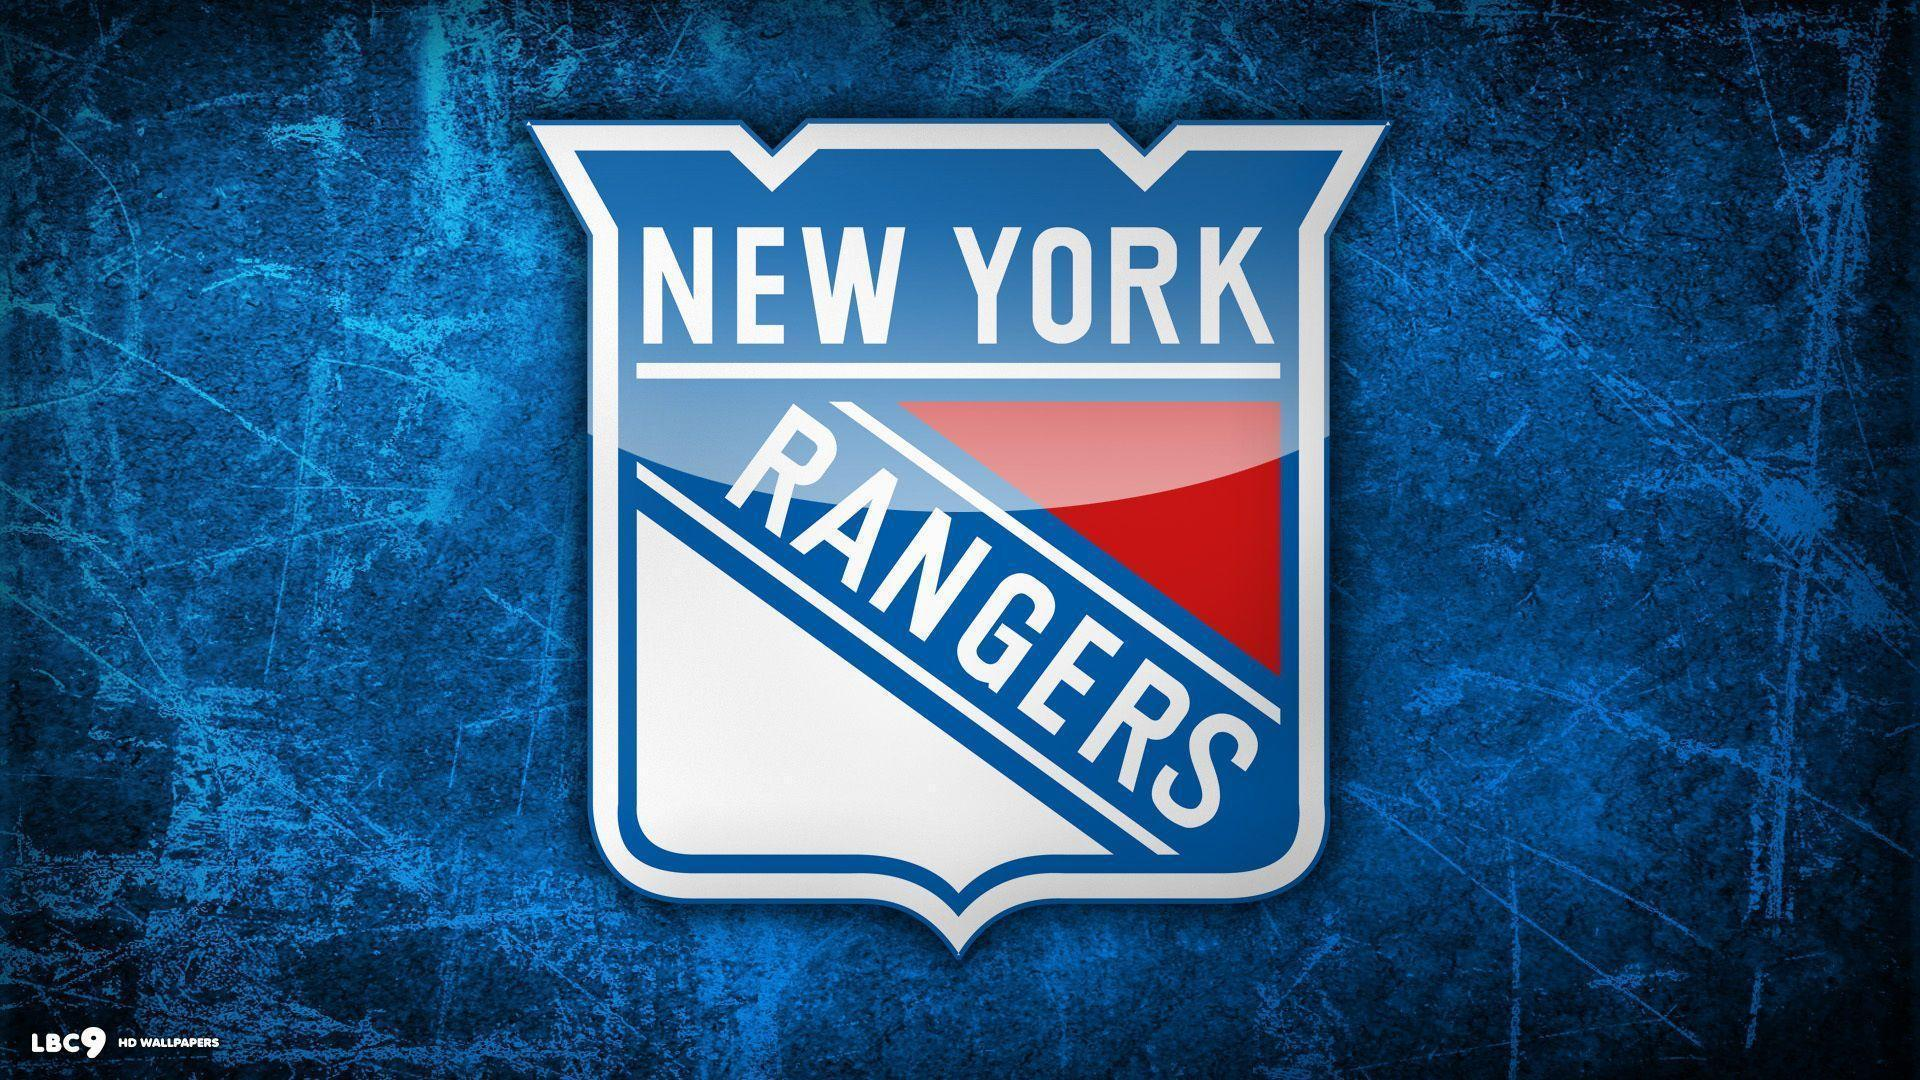 New York Rangers wallpapers | New York Rangers background